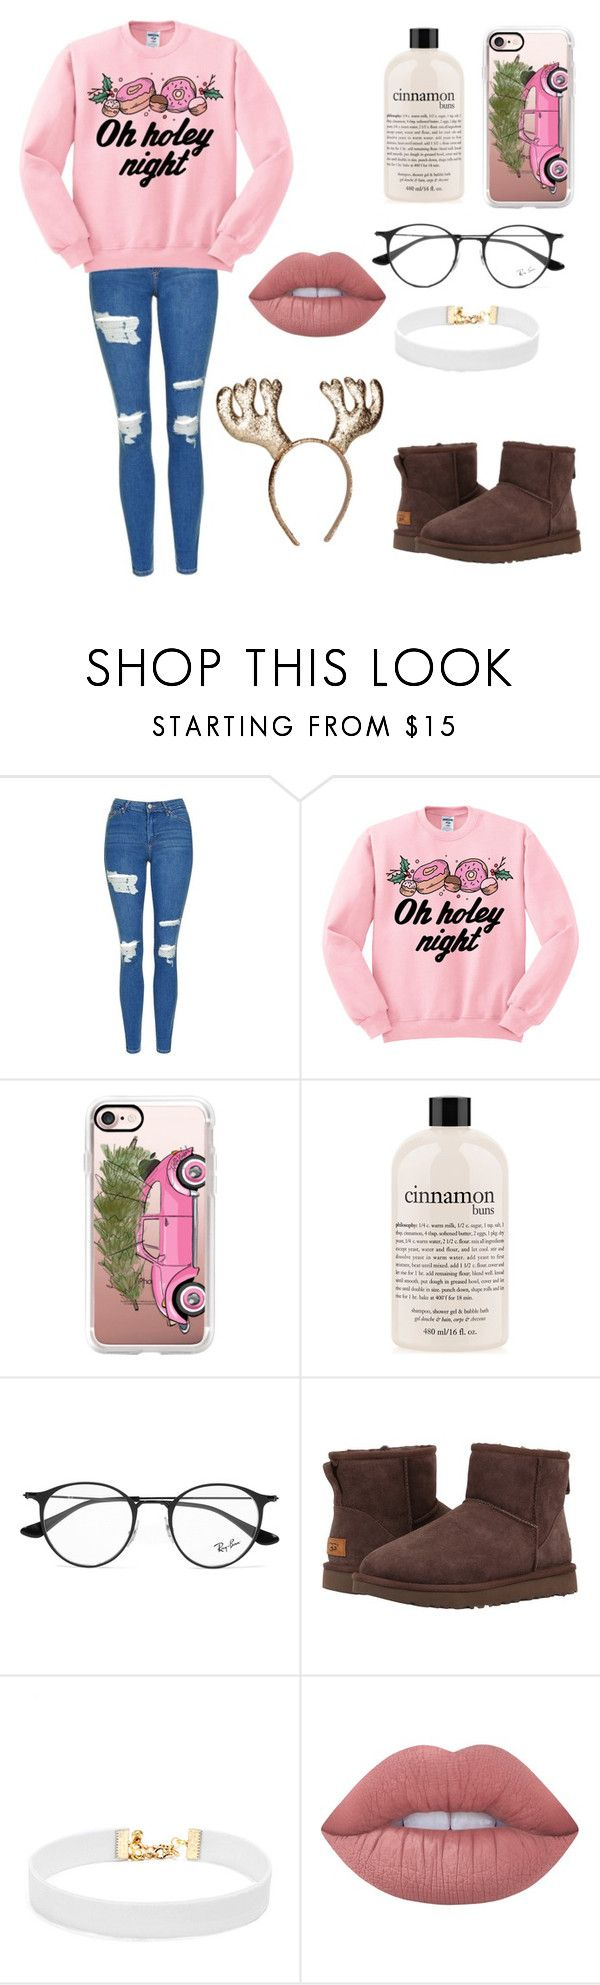 """""""Christmas Chills"""" by foodiefashion ❤ liked on Polyvore featuring Topshop, Junk Food Clothing, Casetify, philosophy, Ray-Ban, UGG Australia, H&M, Vanessa Mooney, Lime Crime and Winter"""